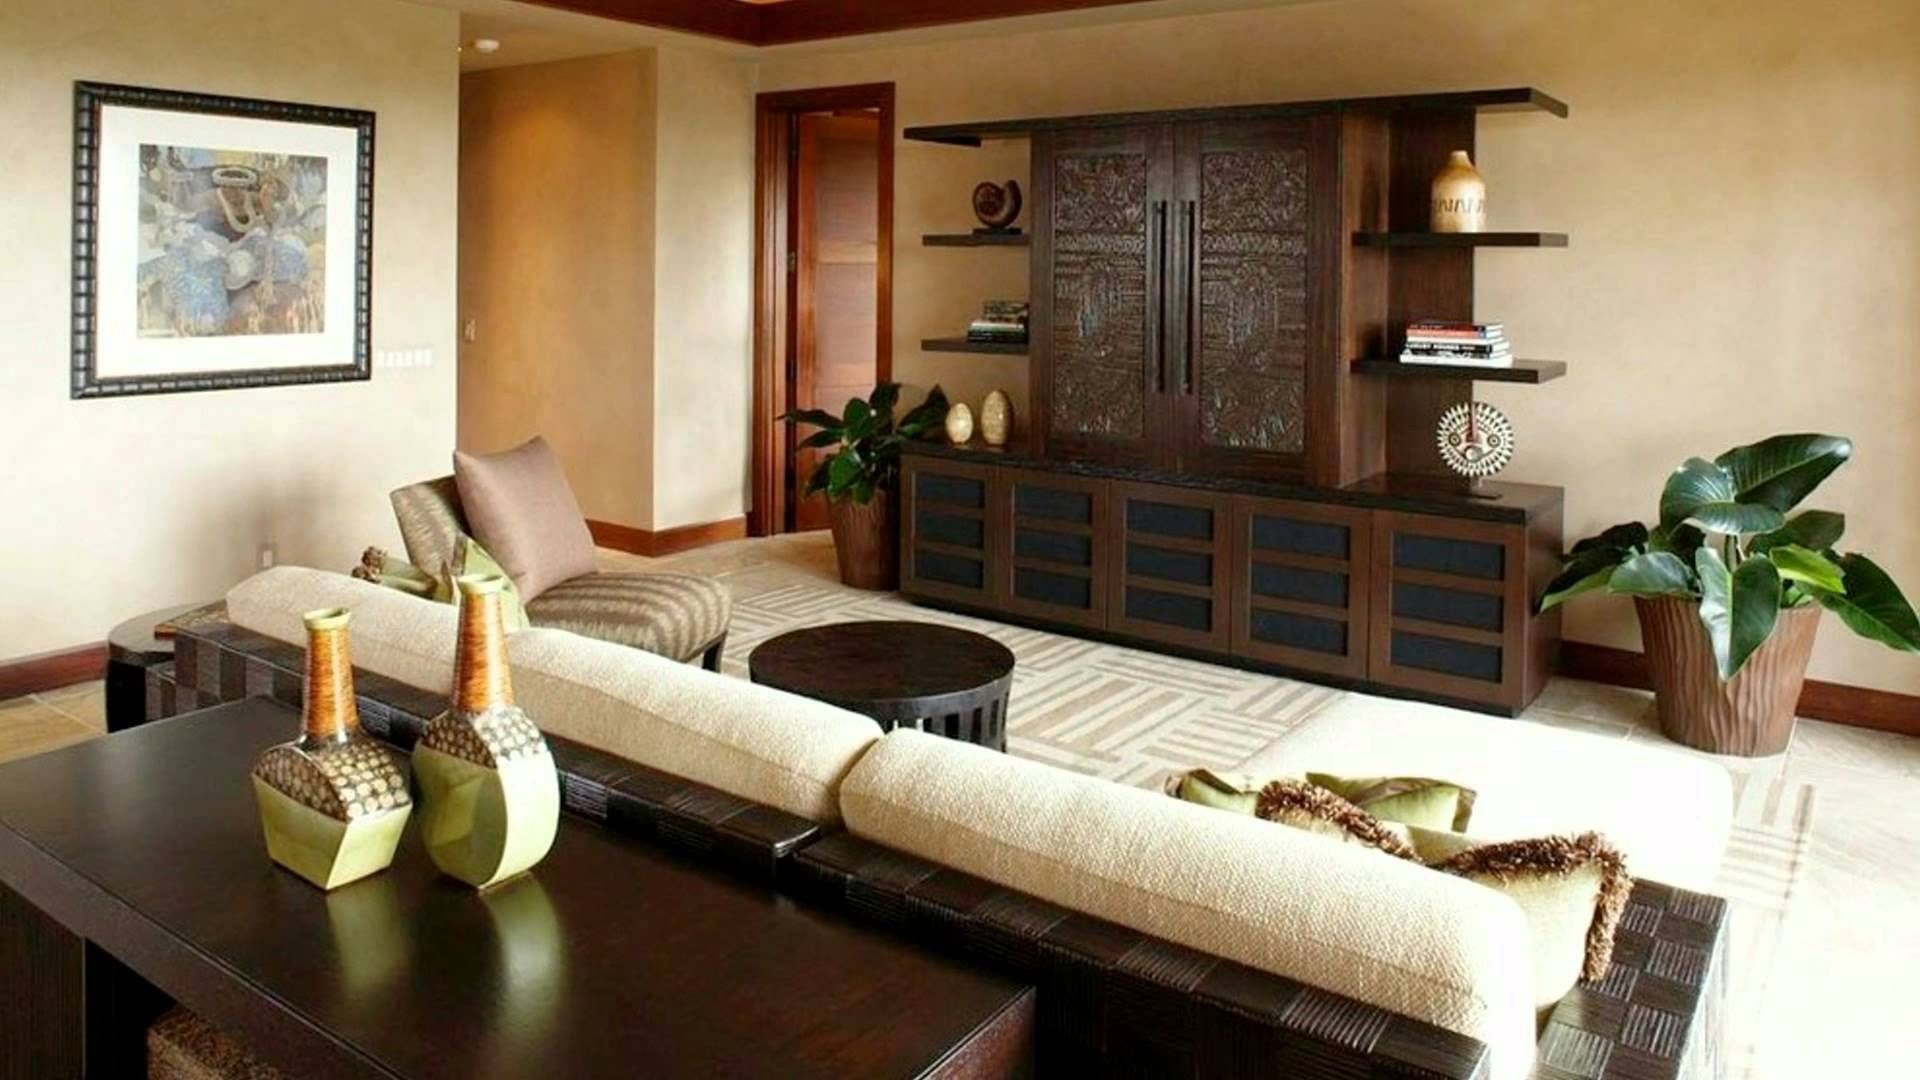 Asian Design Living Room Stunning Asianstyle Interior Design Ideas  Contemporary Interior Design Decorating Inspiration